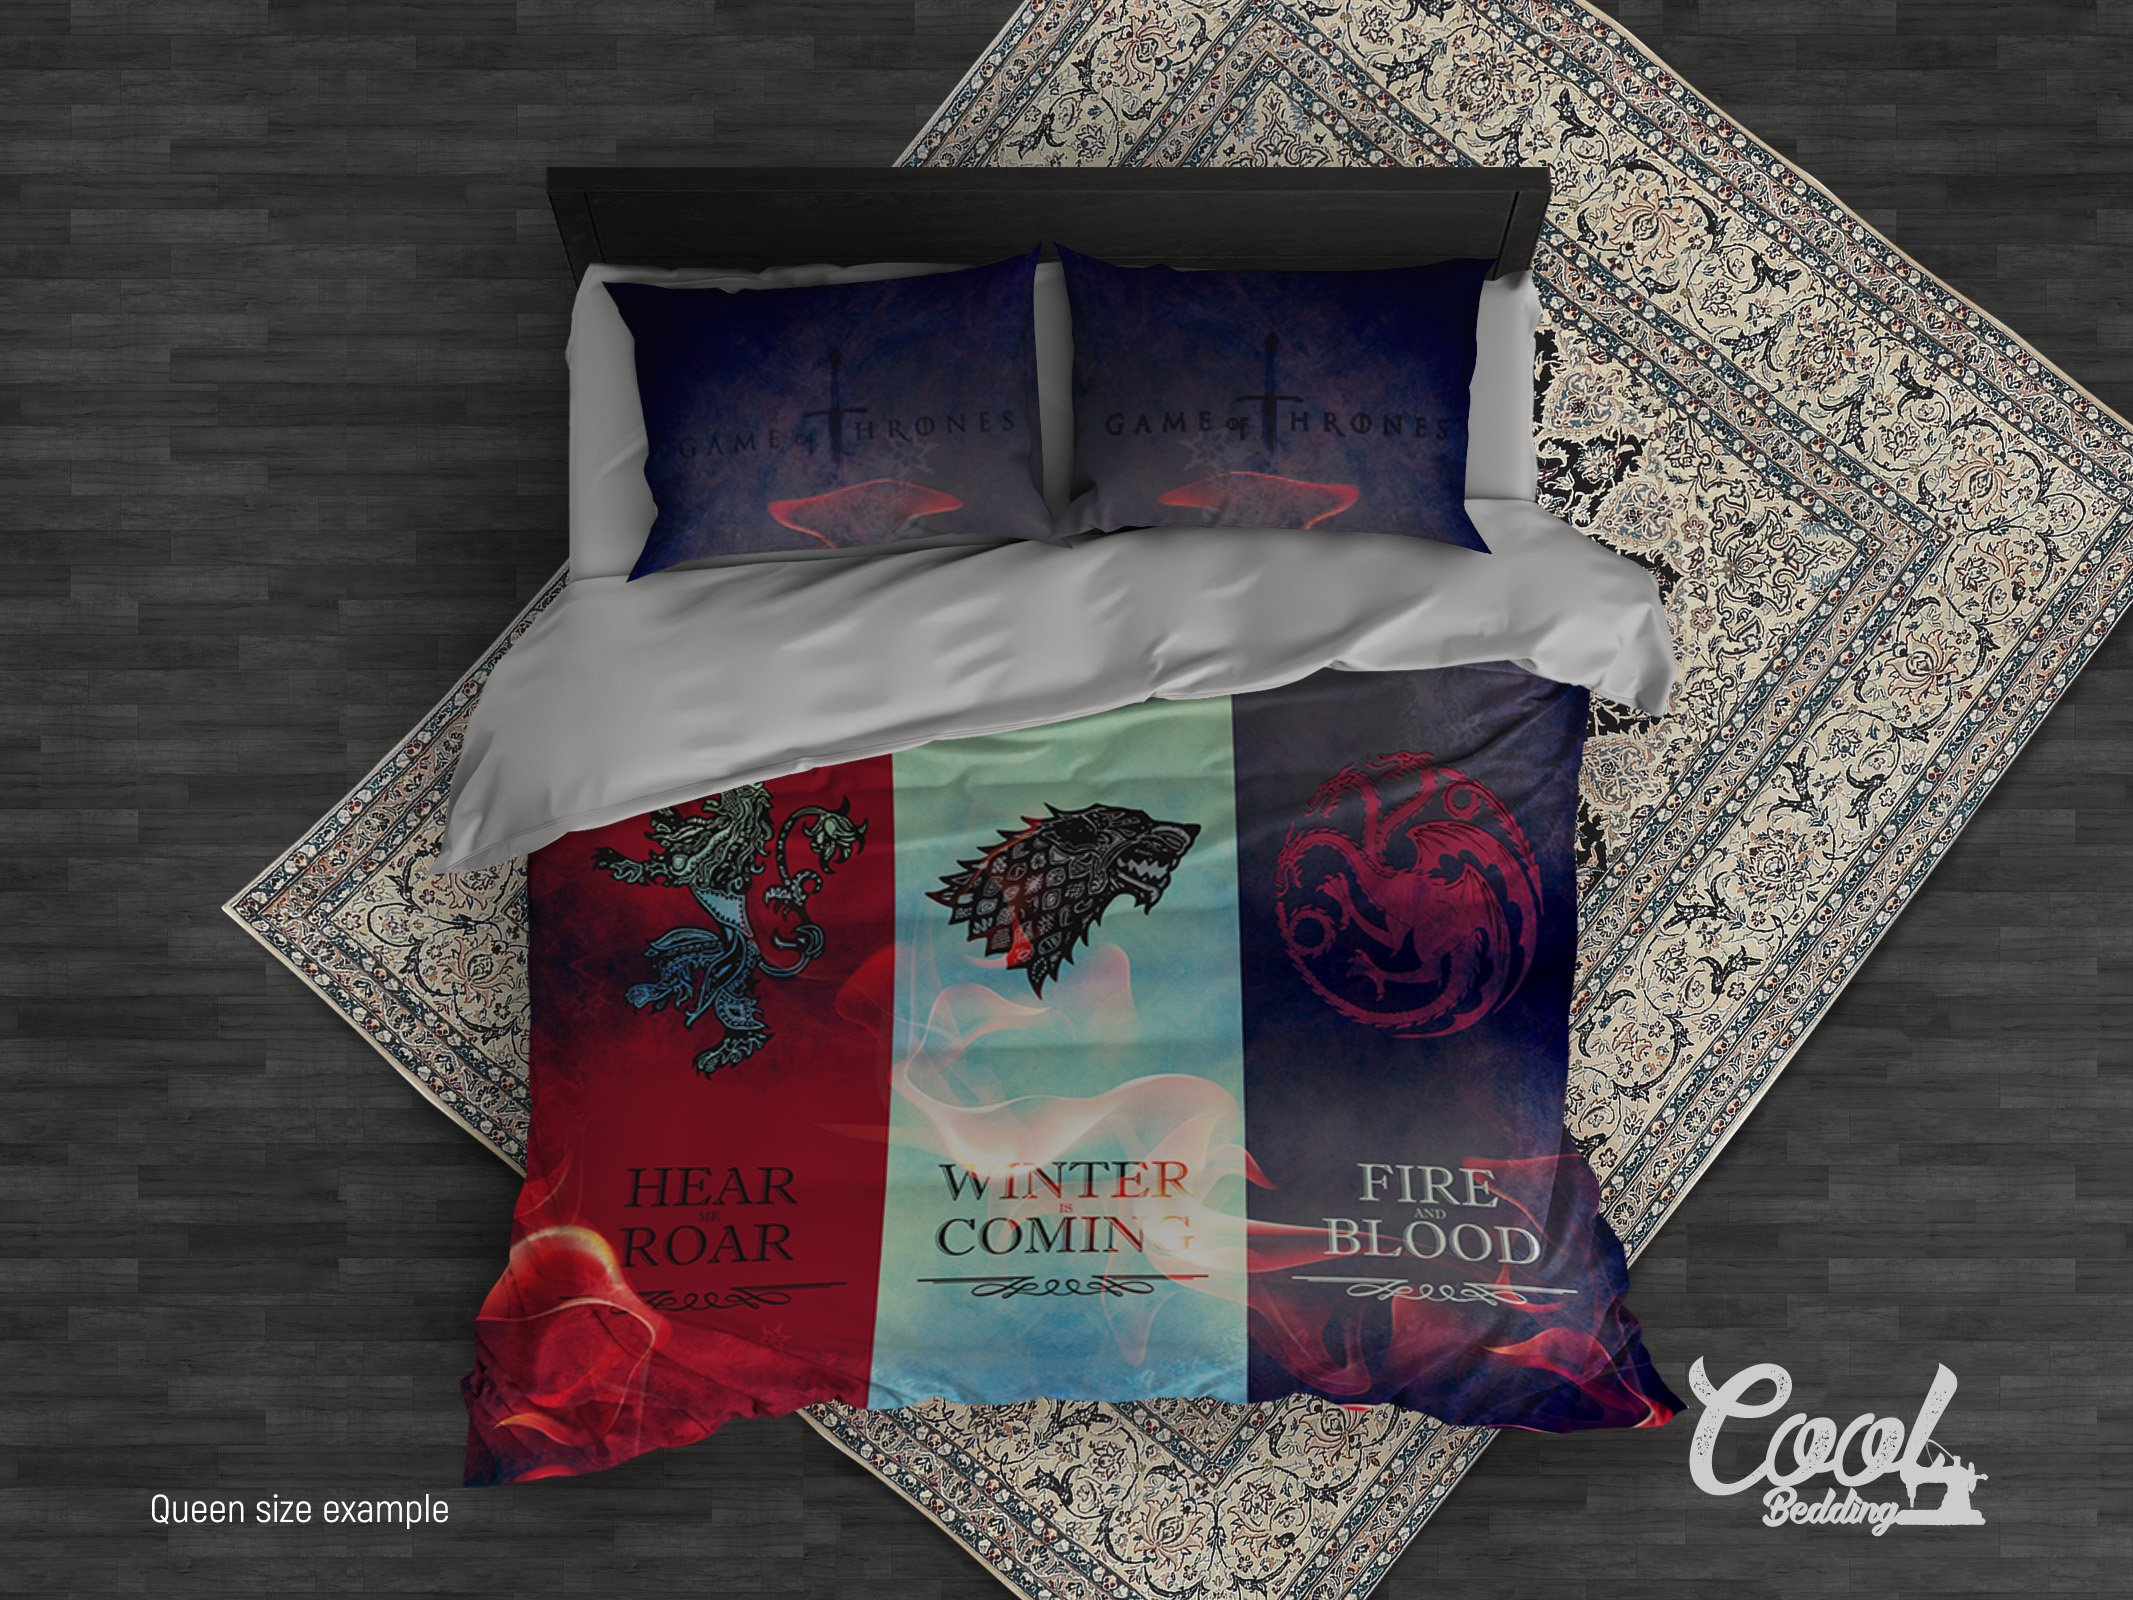 Game of Thrones Duvet Cover or Comforter design by Cool Bedding.3 or 4 Pcs GOT families Bedding Set. King Queen Full Twin Single GOT beddings (Queen 95''x87'')